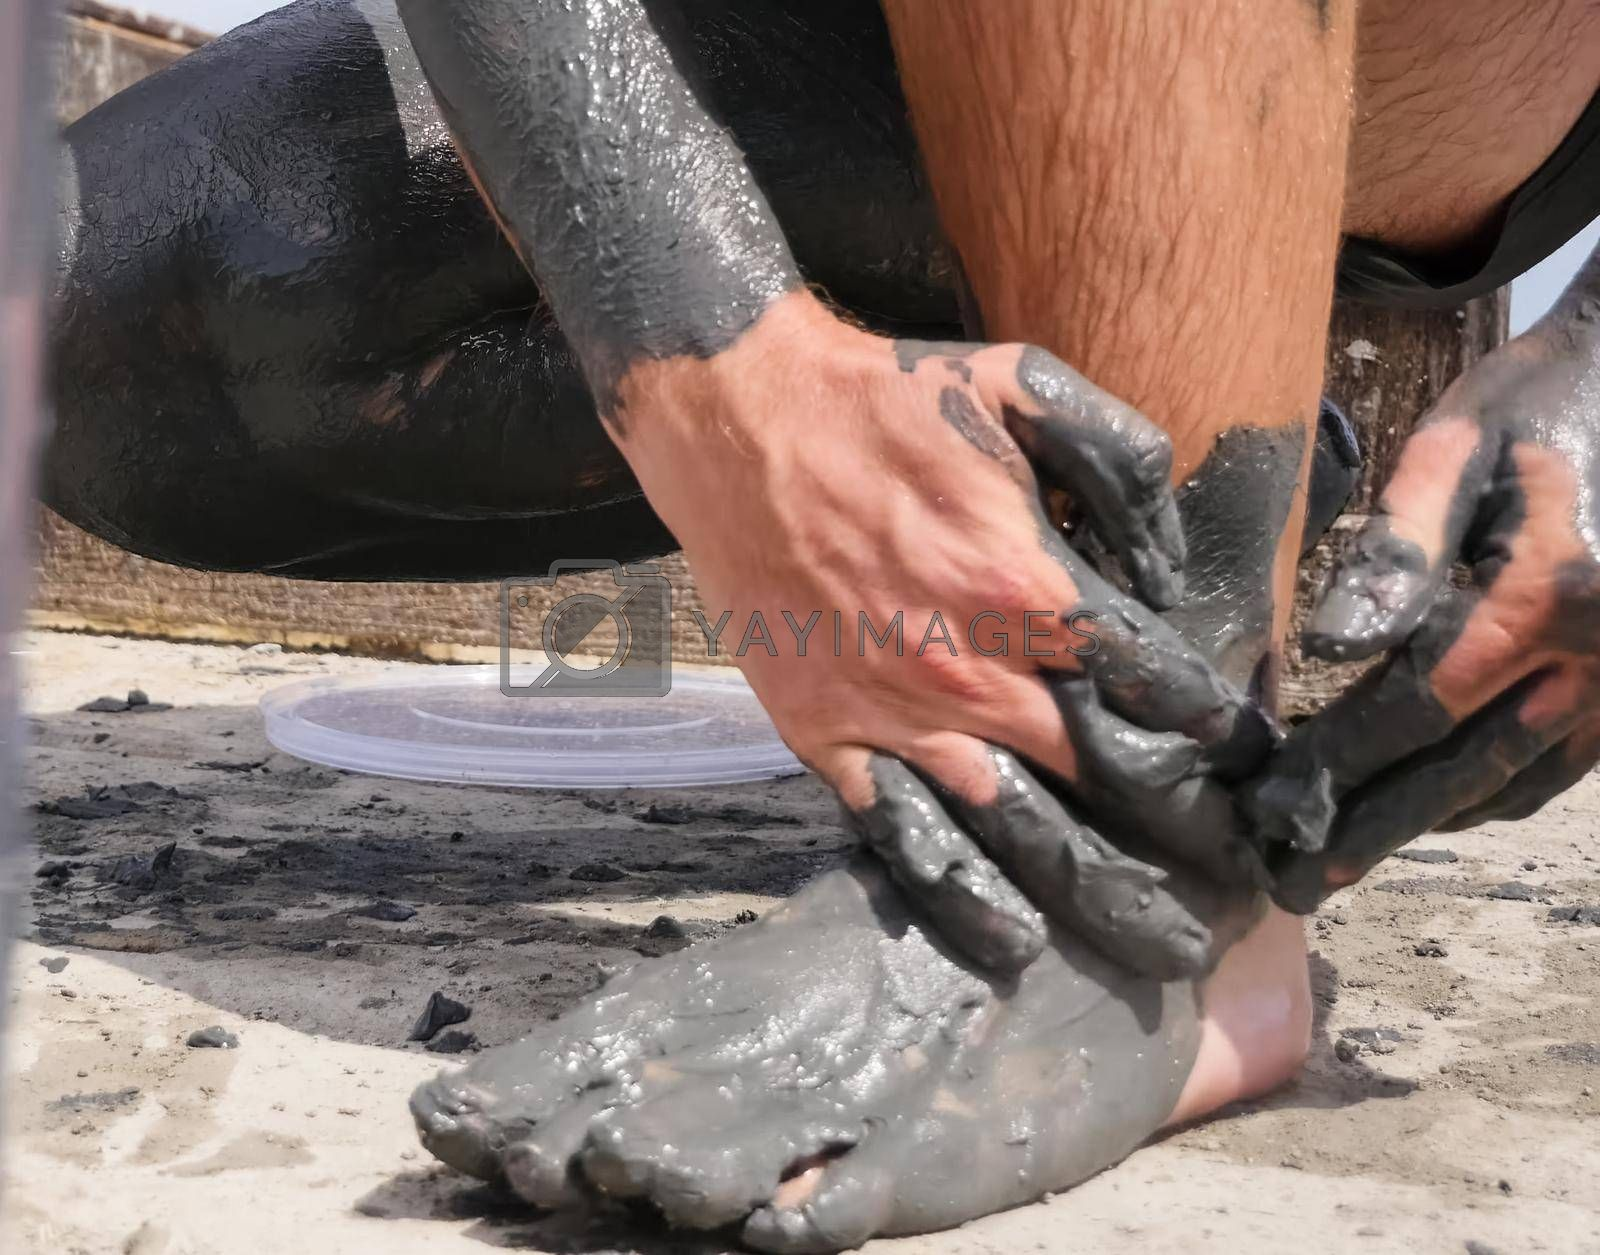 People are wiped with mud. Mud baths in Spain.